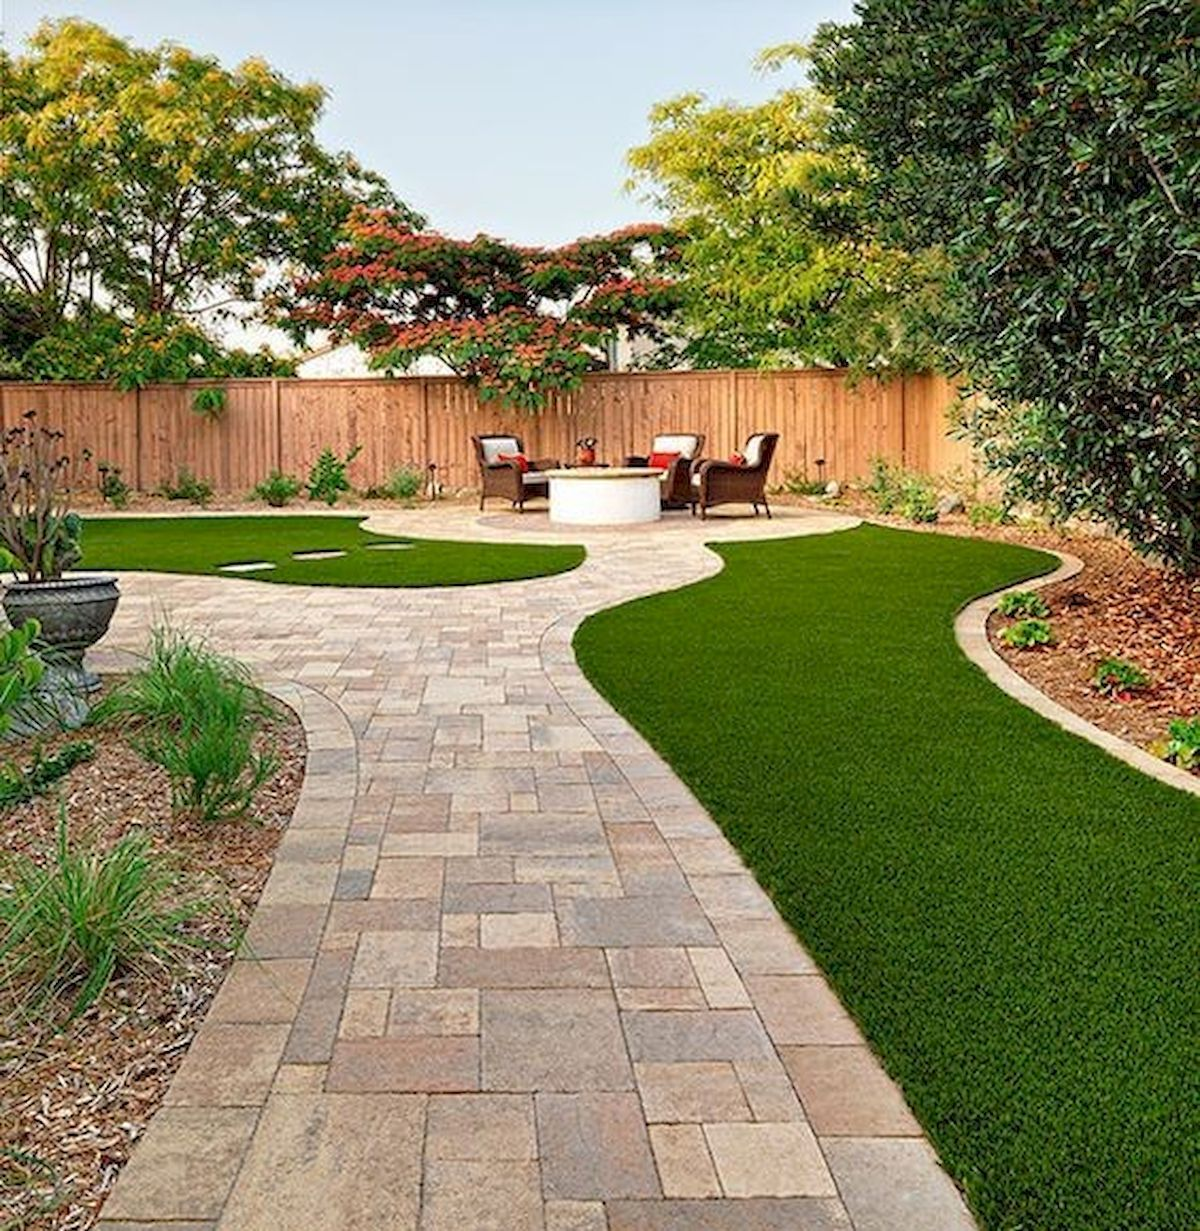 60 beautiful backyard garden design ideas and remodel on beautiful backyard garden design ideas and remodel create your extraordinary garden id=82217